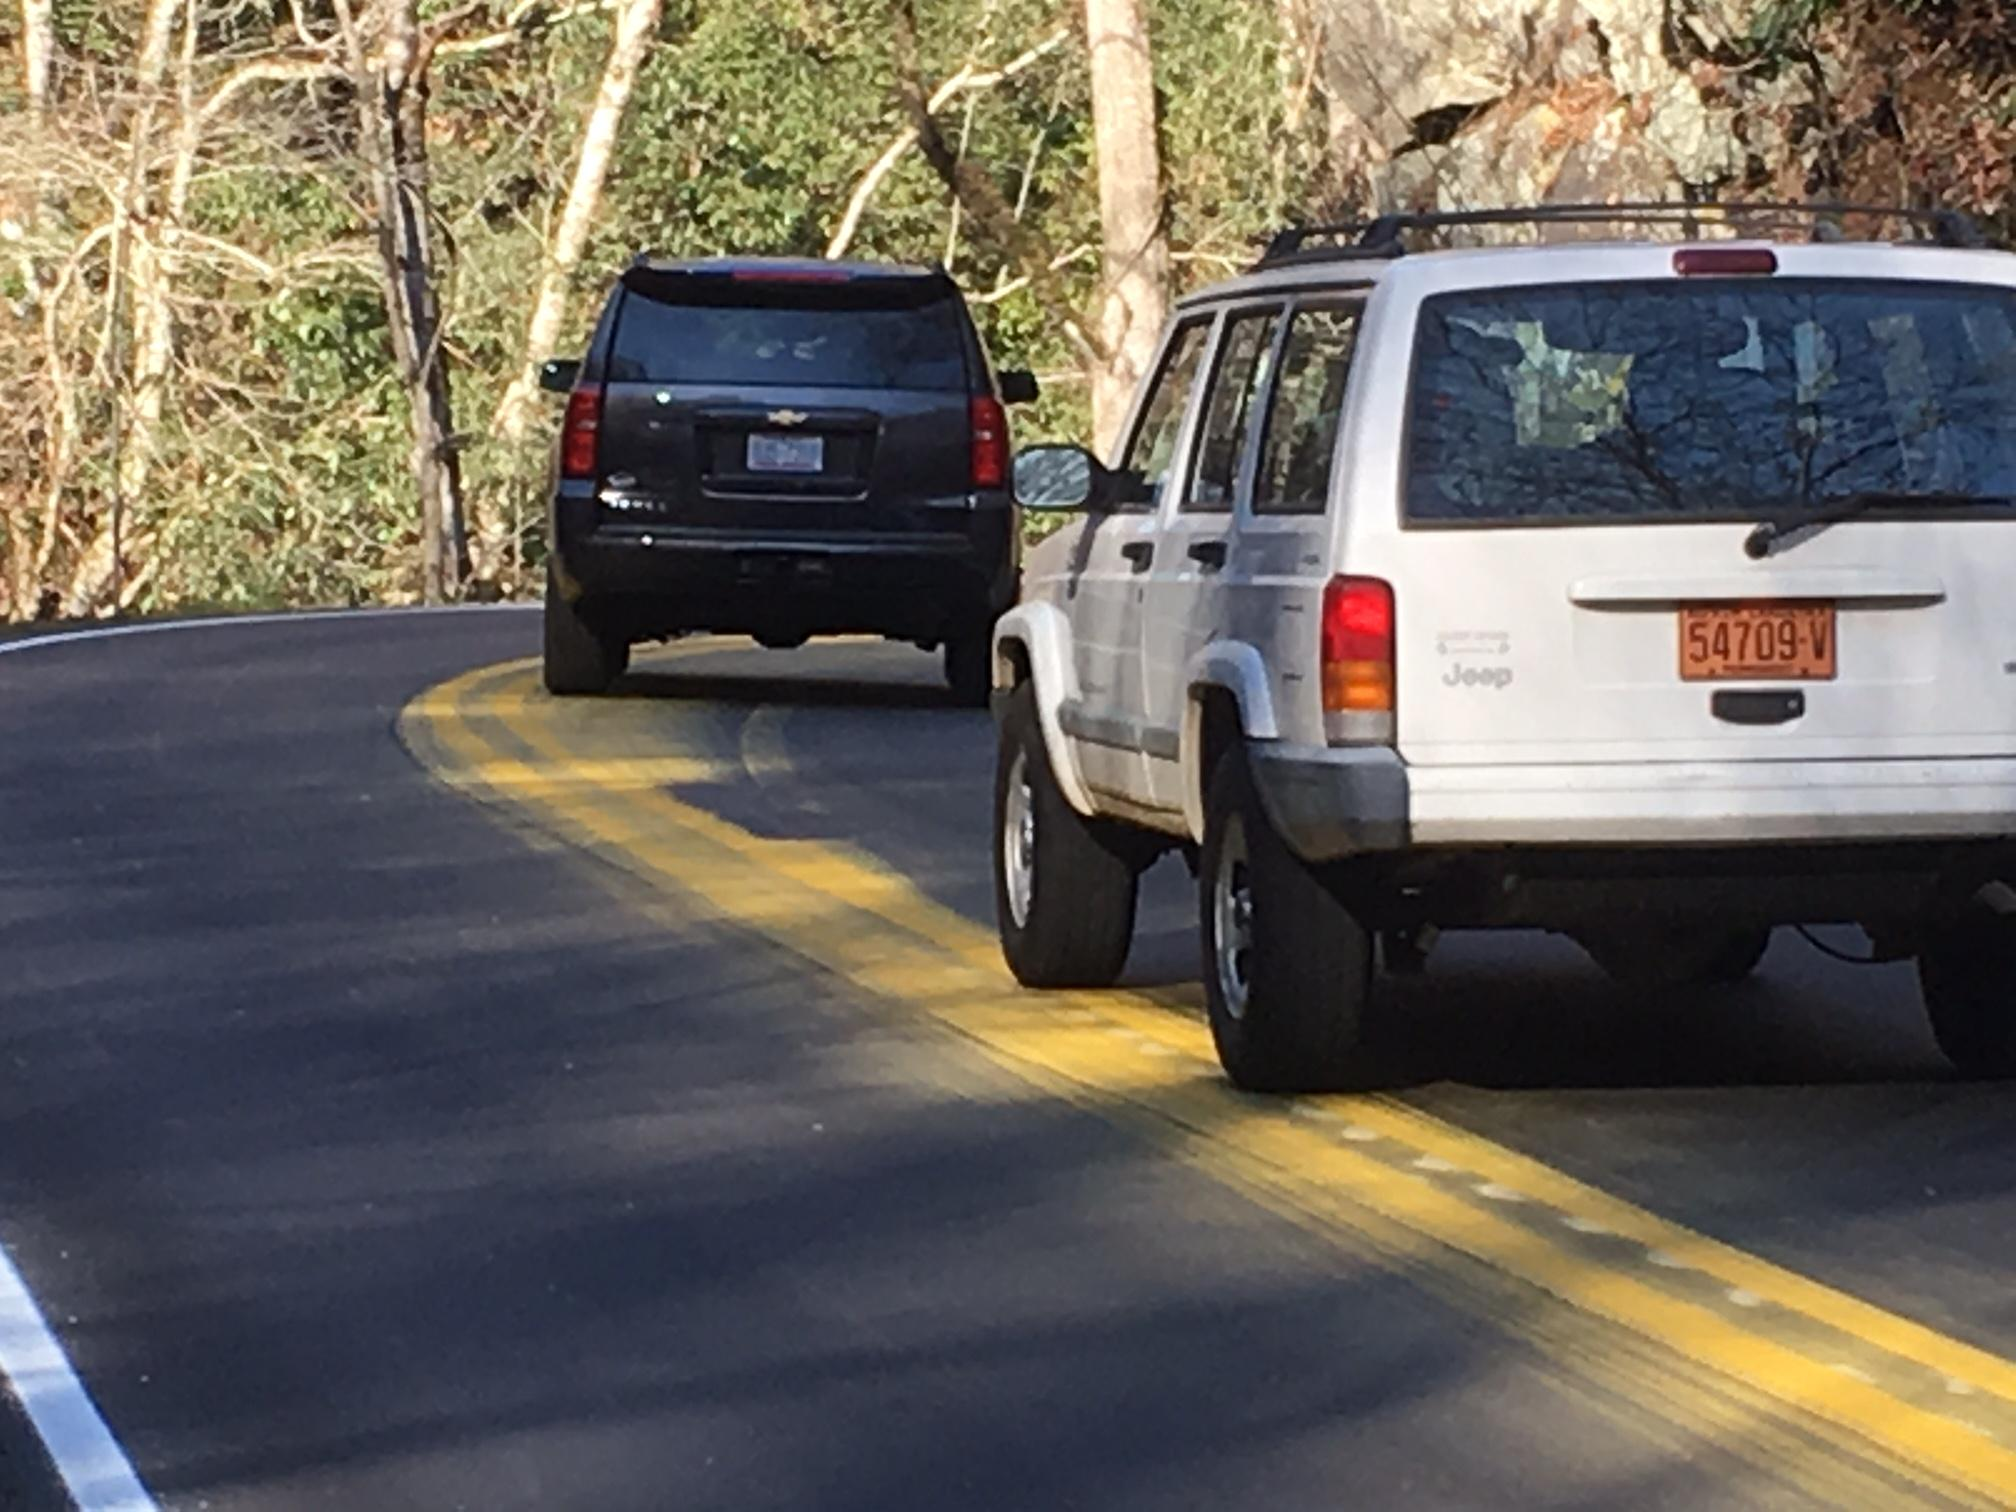 Drivers say a crew painted the yellow center line along a section of Wayah Road Saturday night in the Nantahala community. But they say the road was too wet and temperatures too cold for the paint to stick. The result was many vehicles getting splashed in yellow paint. (Photo credit: WLOS Staff)